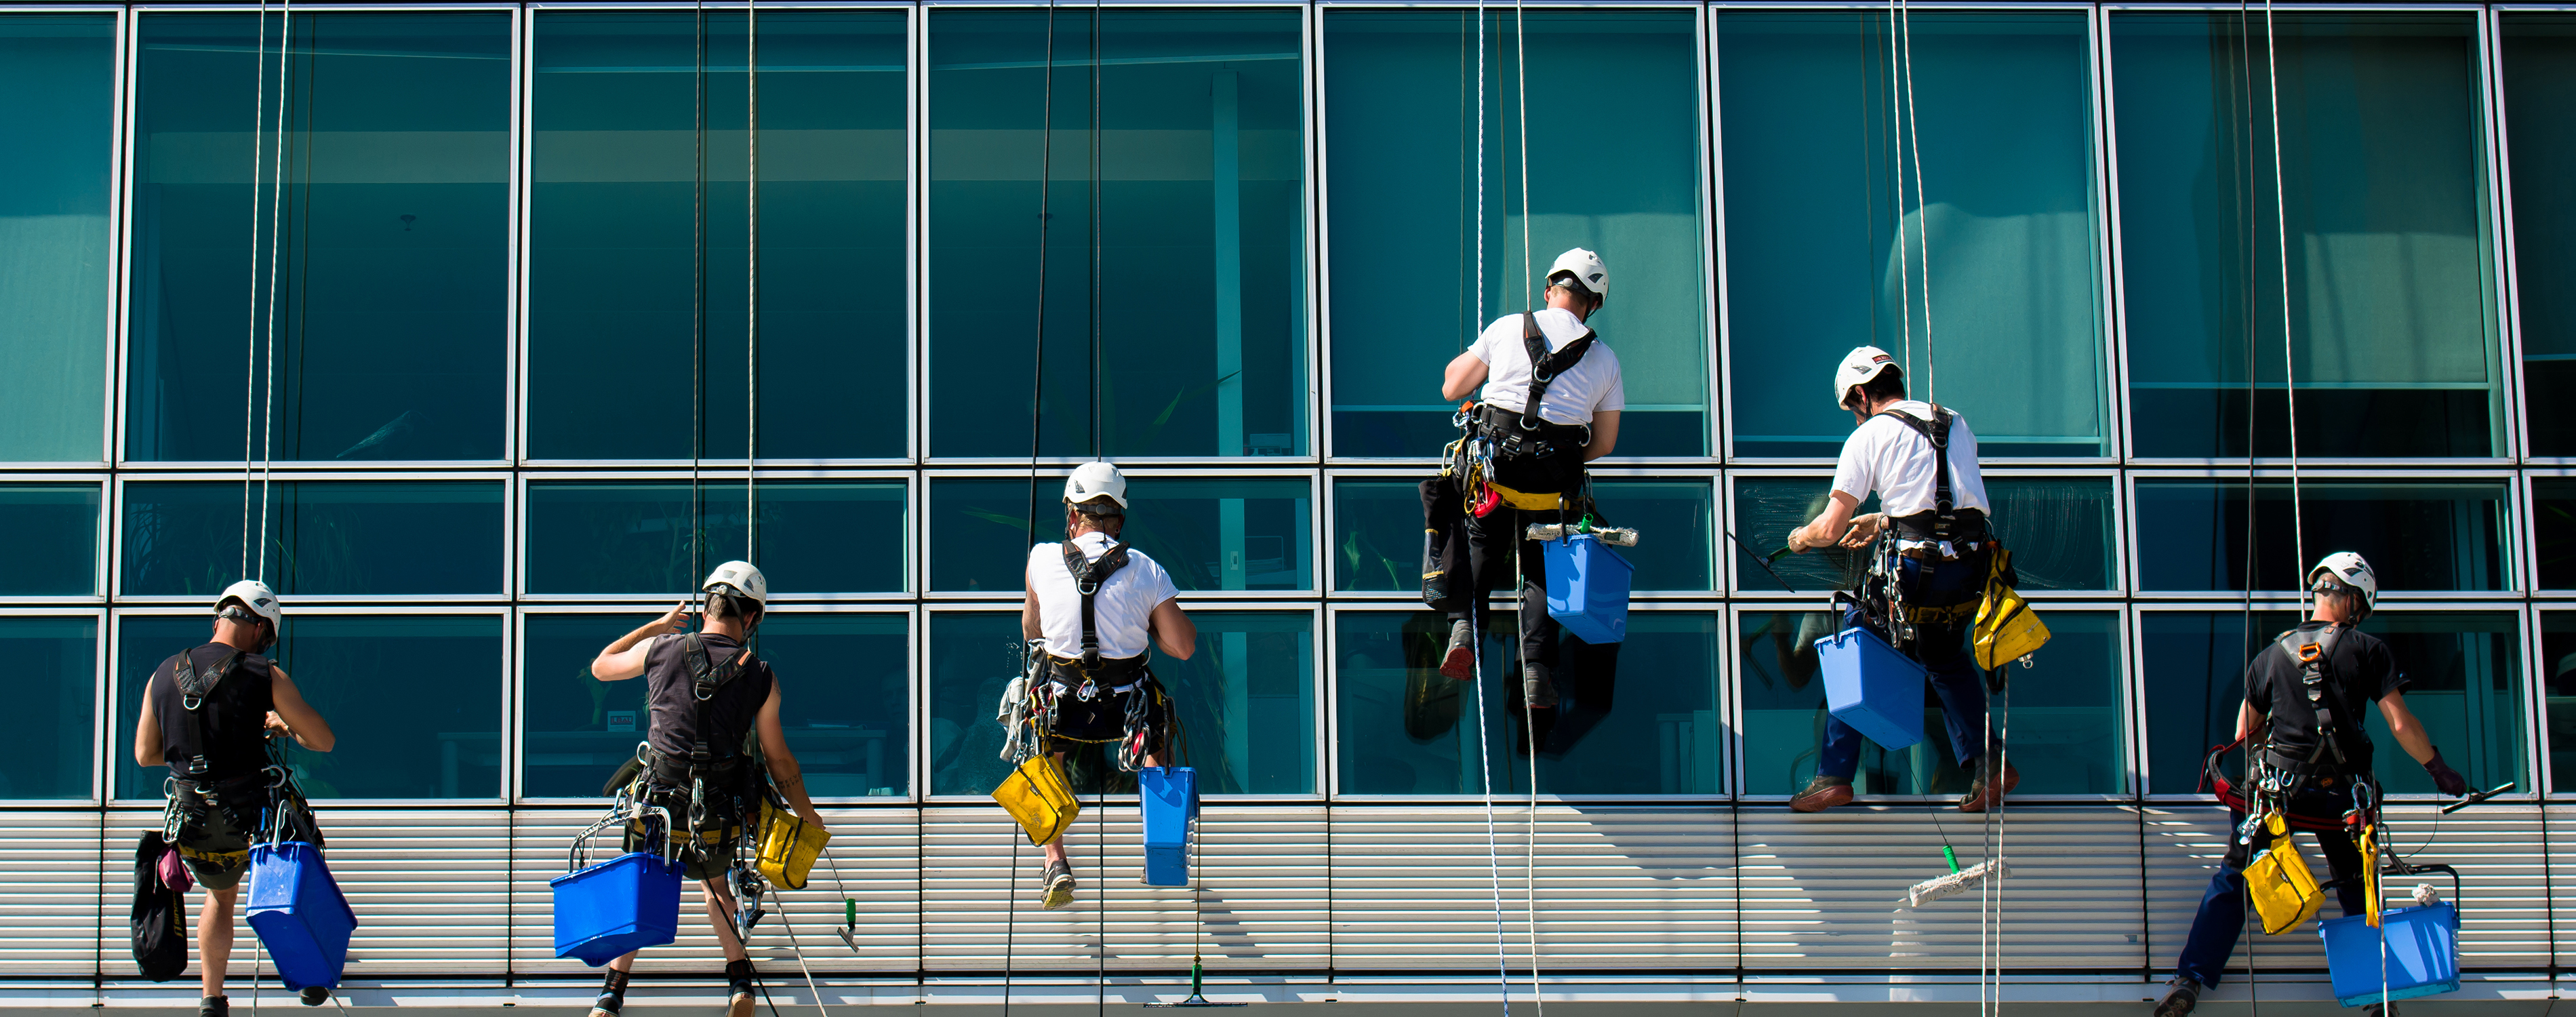 cleaning-window-mens